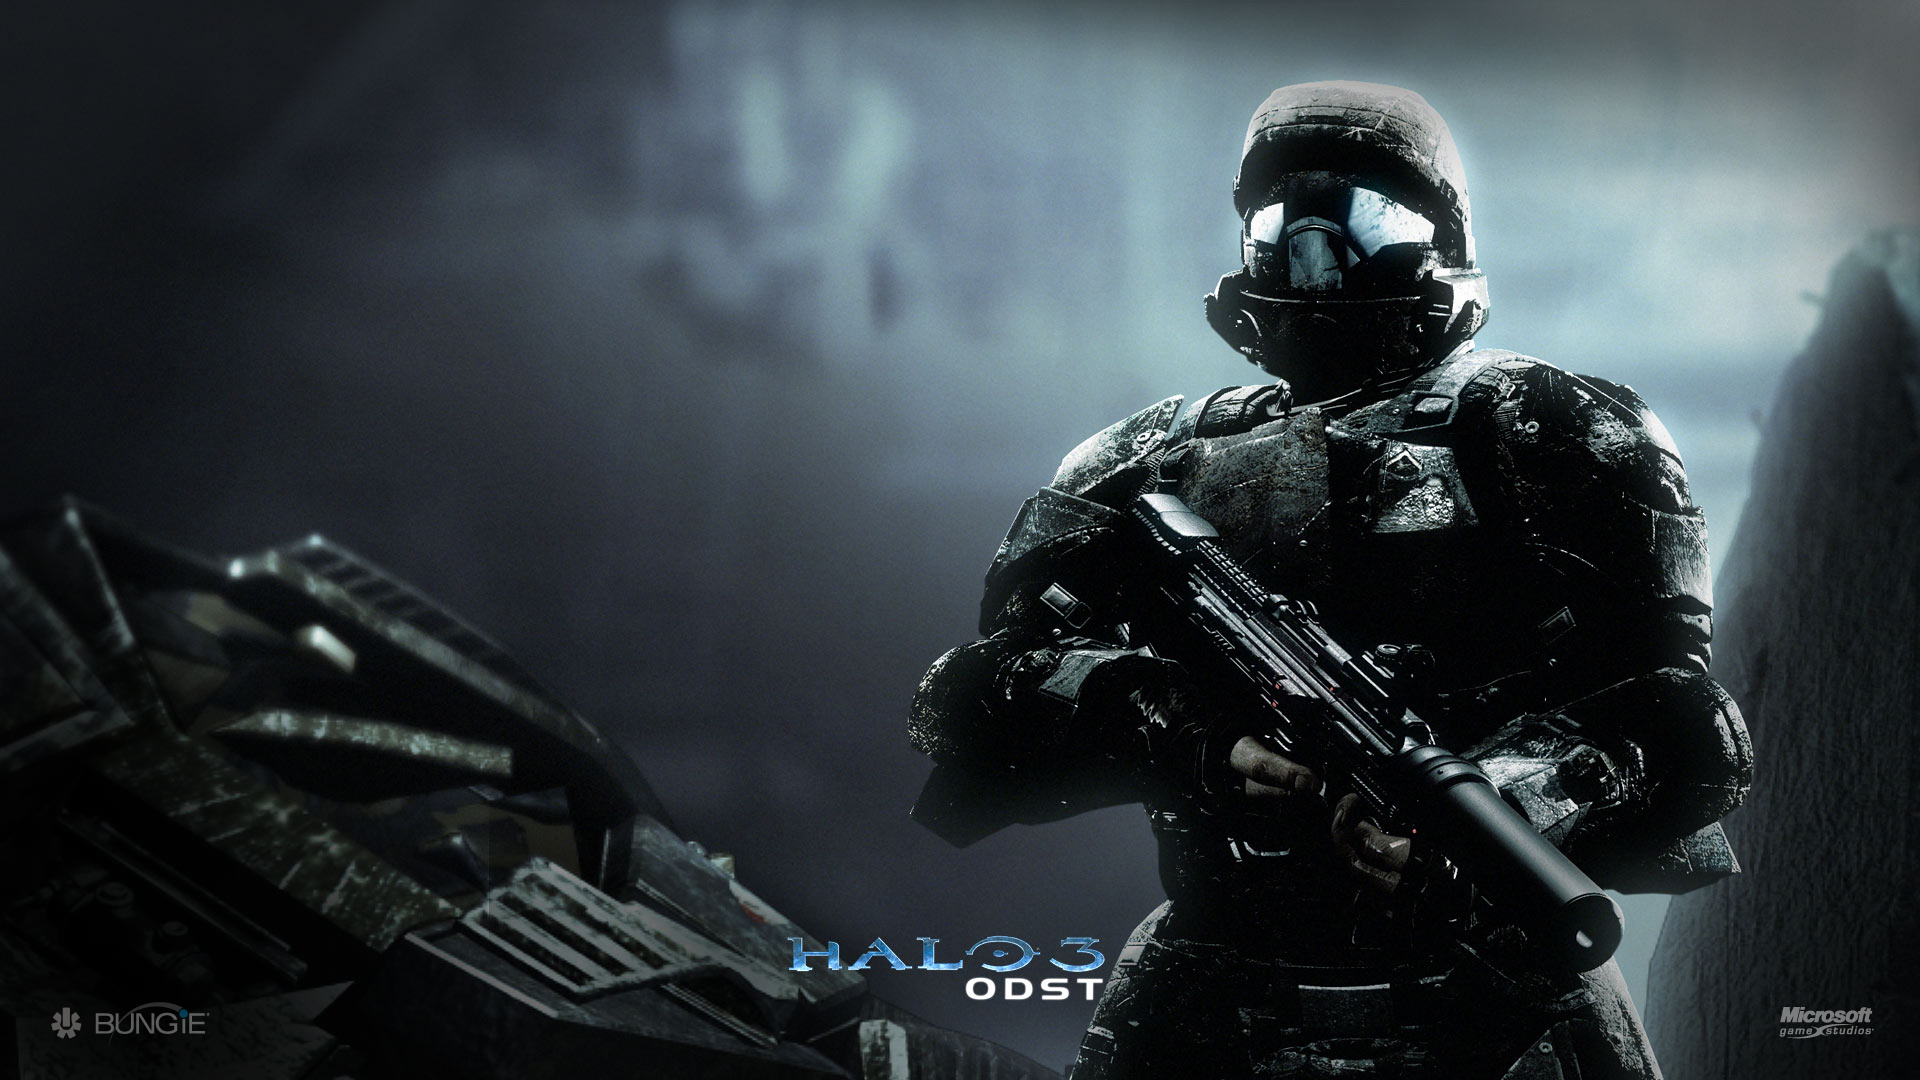 Free Halo Wallpapers For Desktop, HD Quality Halo Images, Halo 1920x1080